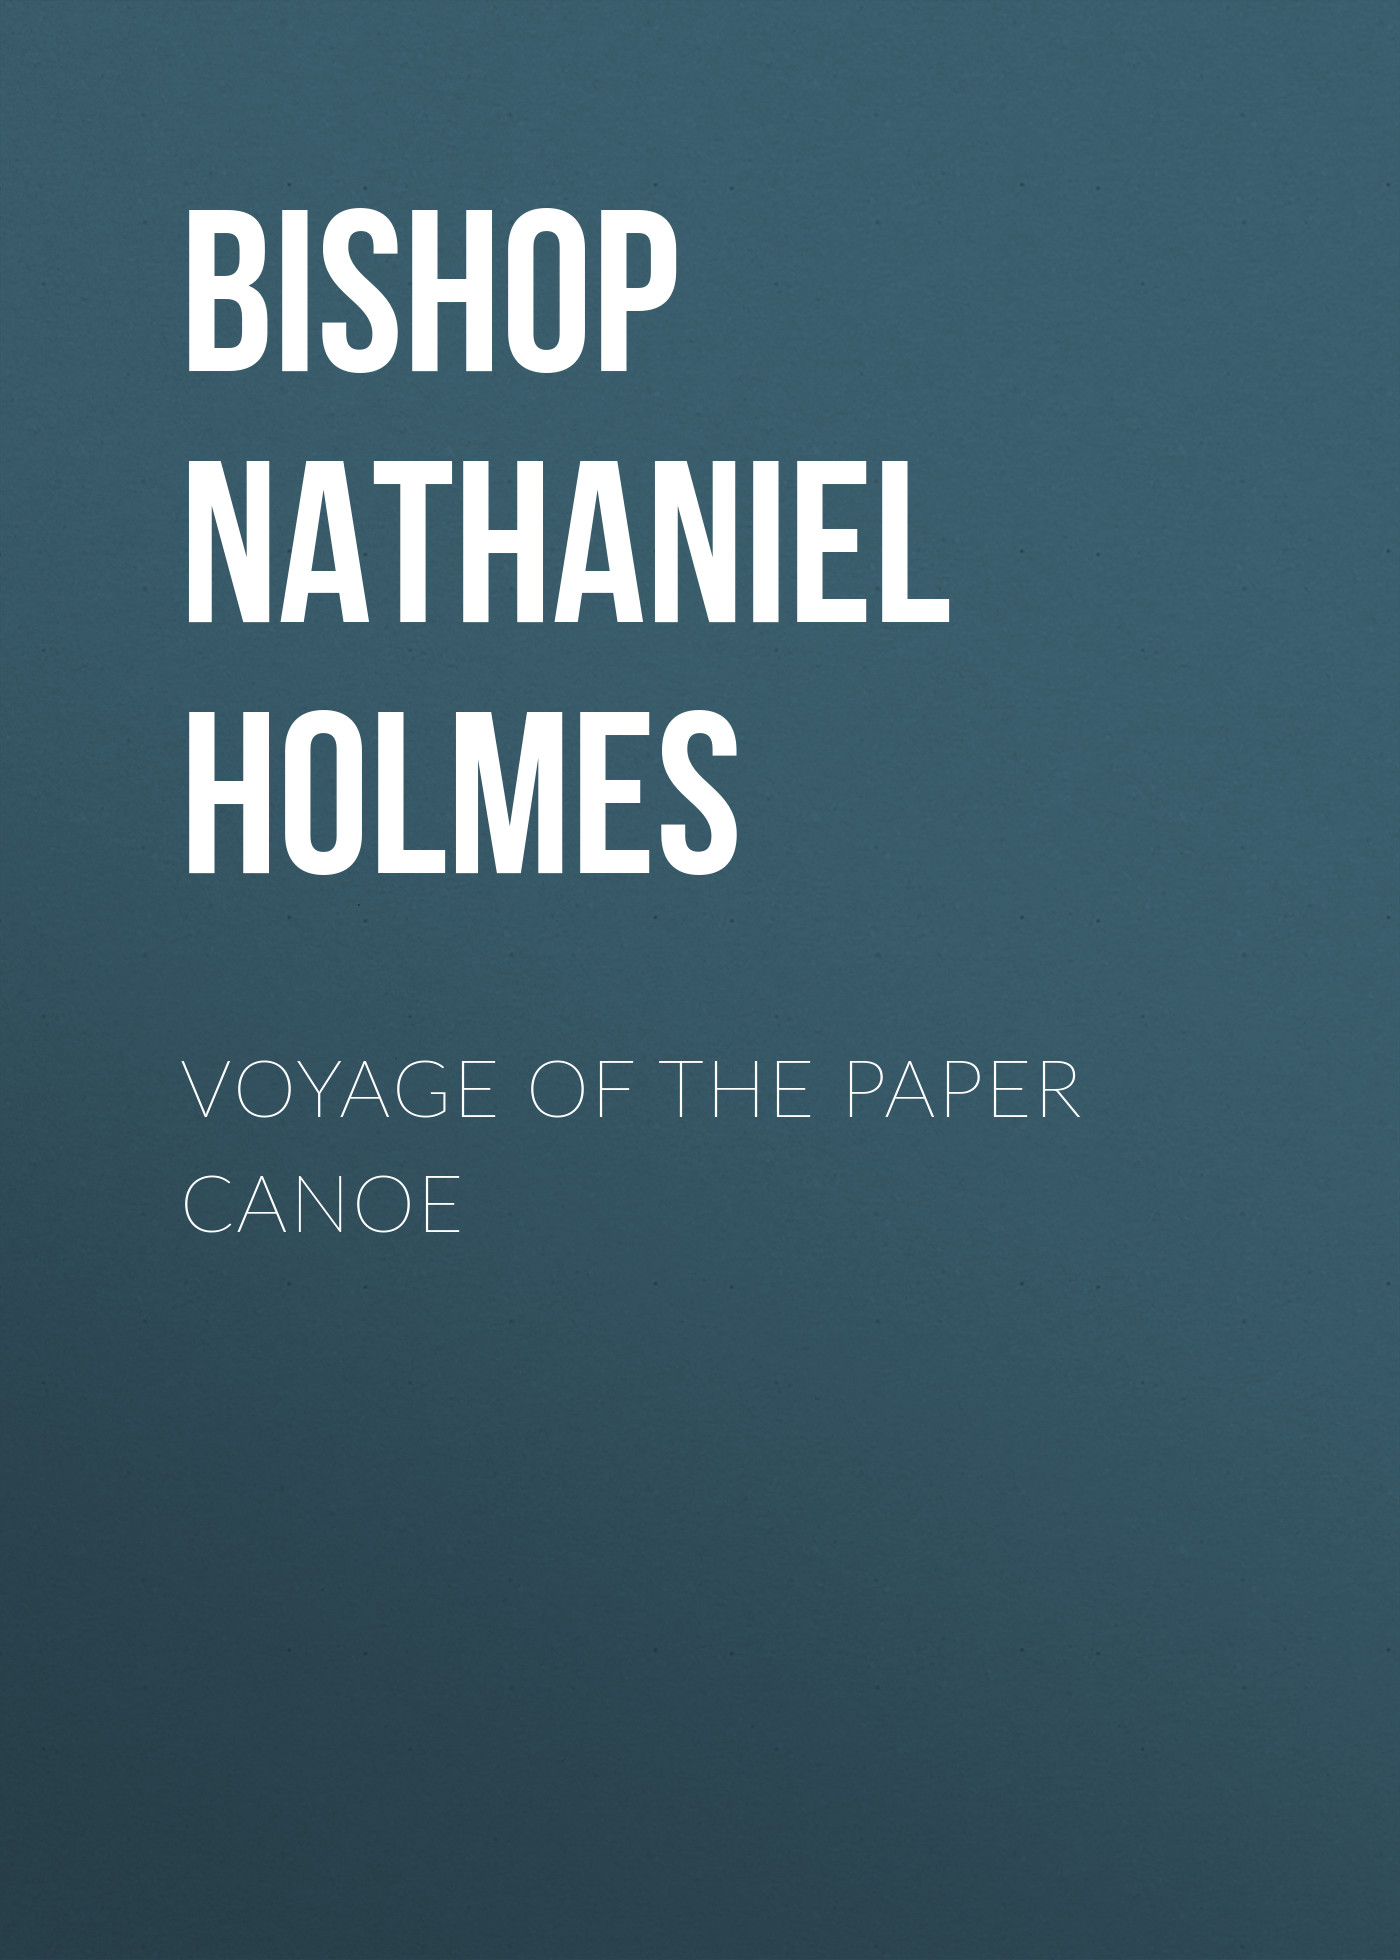 Bishop Nathaniel Holmes Voyage of the Paper Canoe